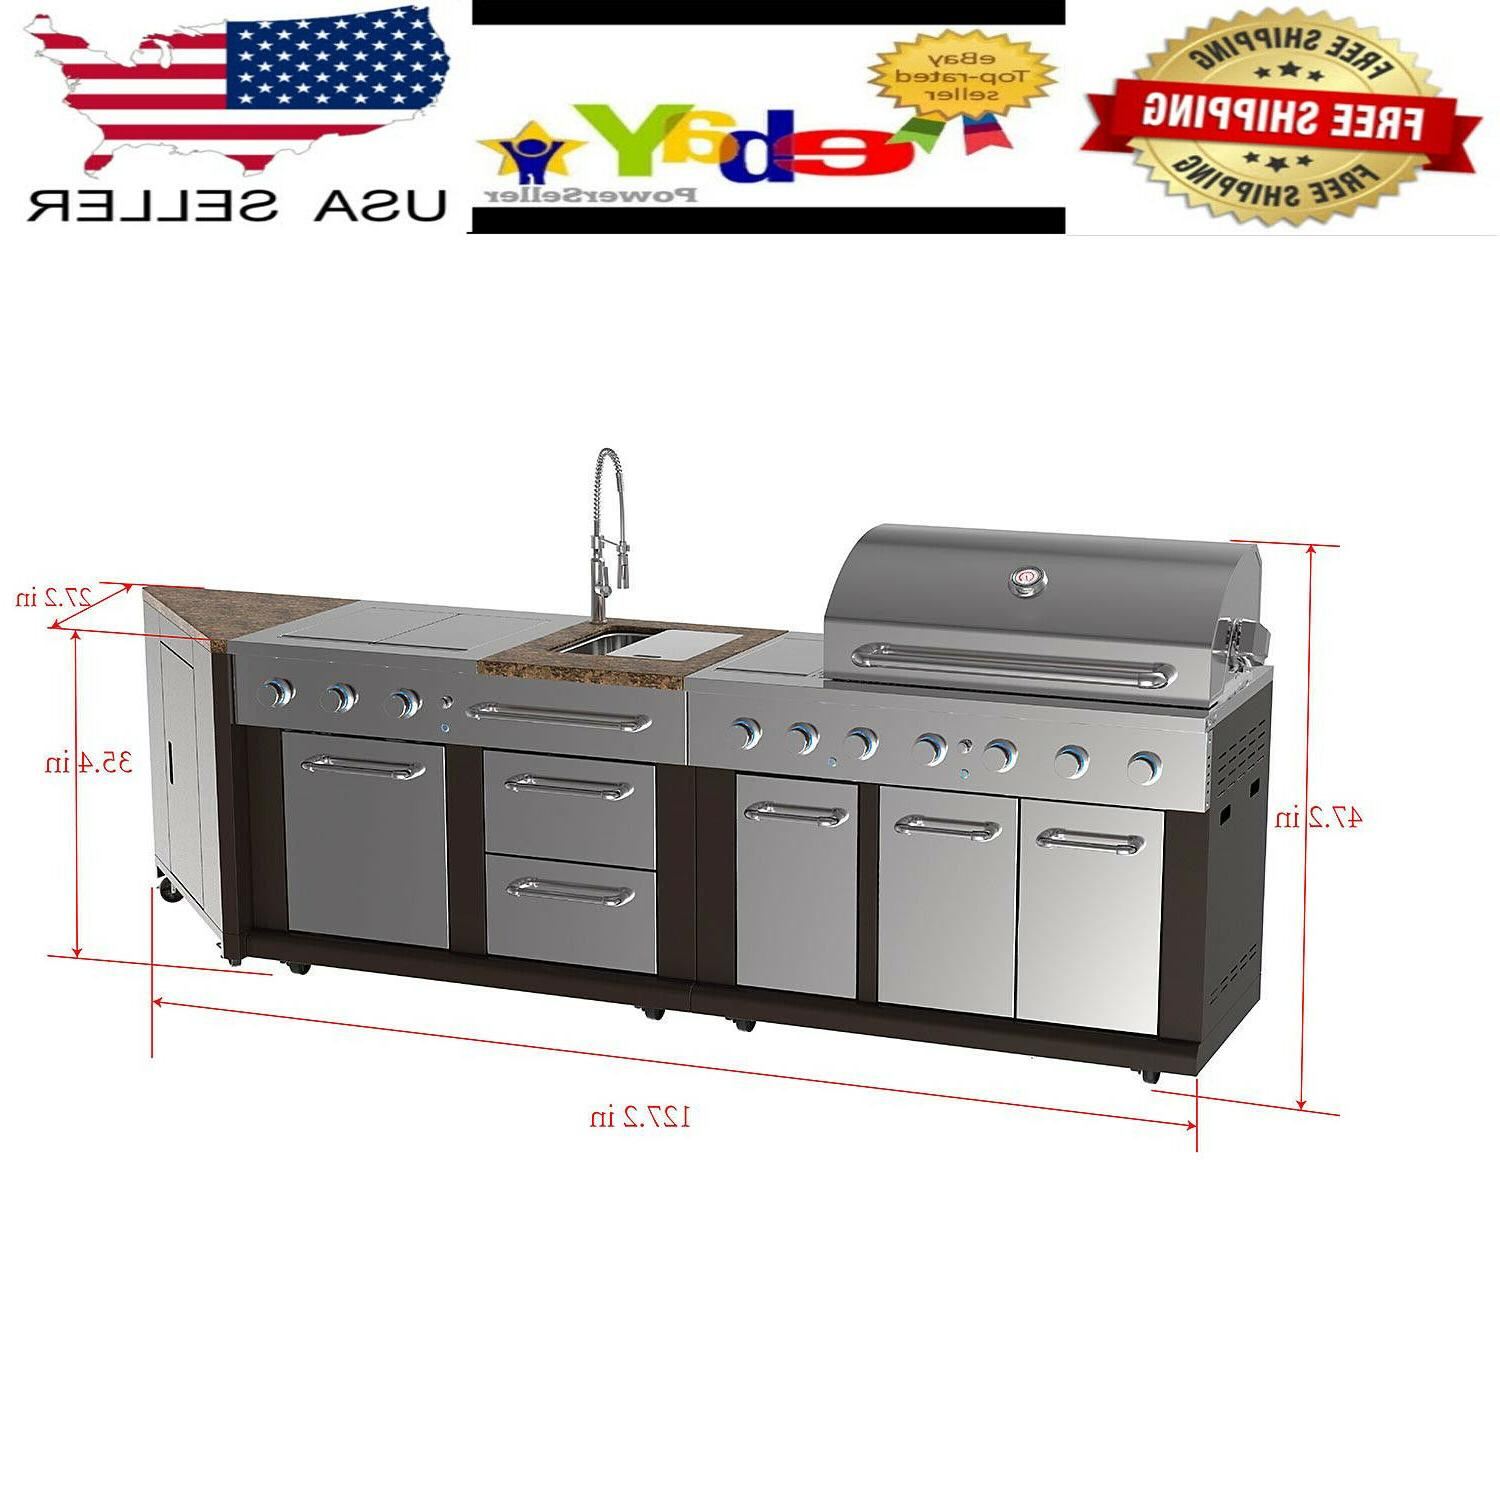 New 5 Burner Propane Gas BBQ Grill LP Stainless Steel Porcel